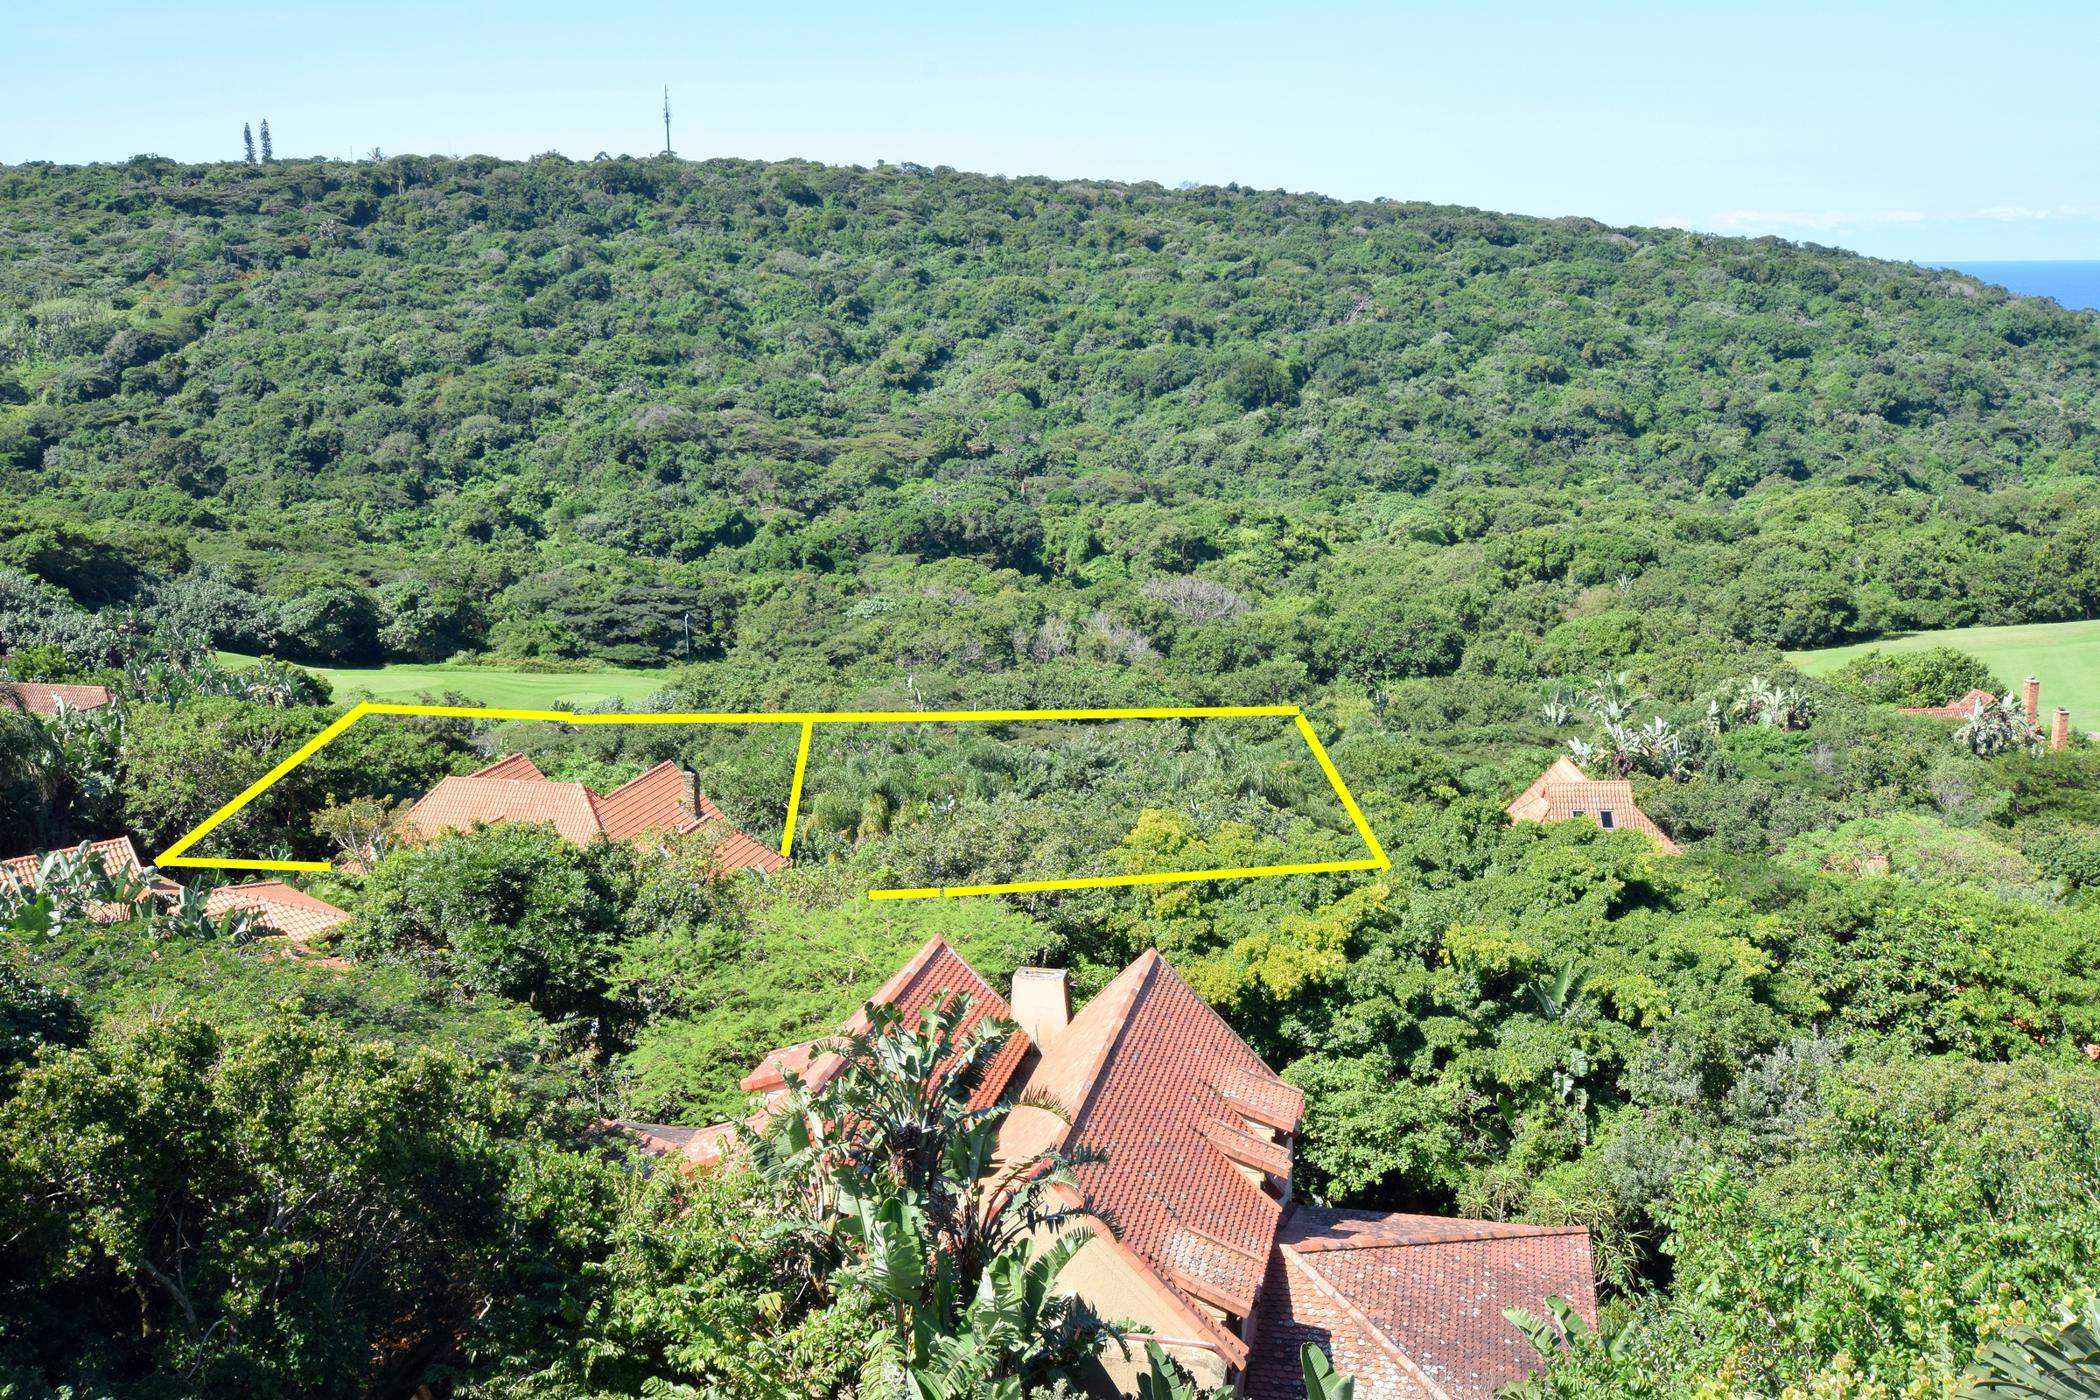 1745 m² residential vacant land for sale in Zimbali Coastal Resort